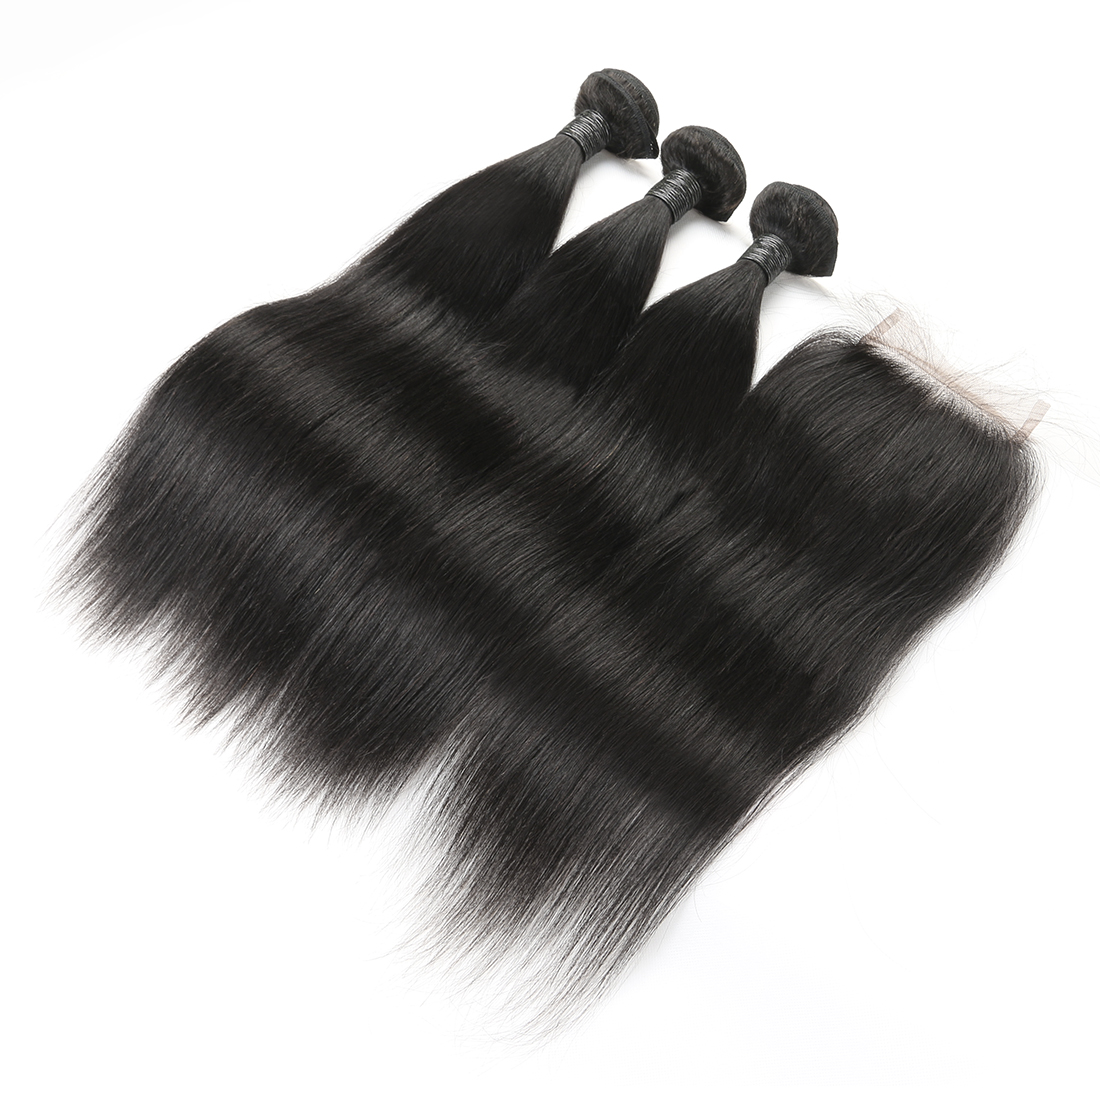 9A Brazilian Straight Human Virgin Hair Weave 3 Bundles With Lace Closure